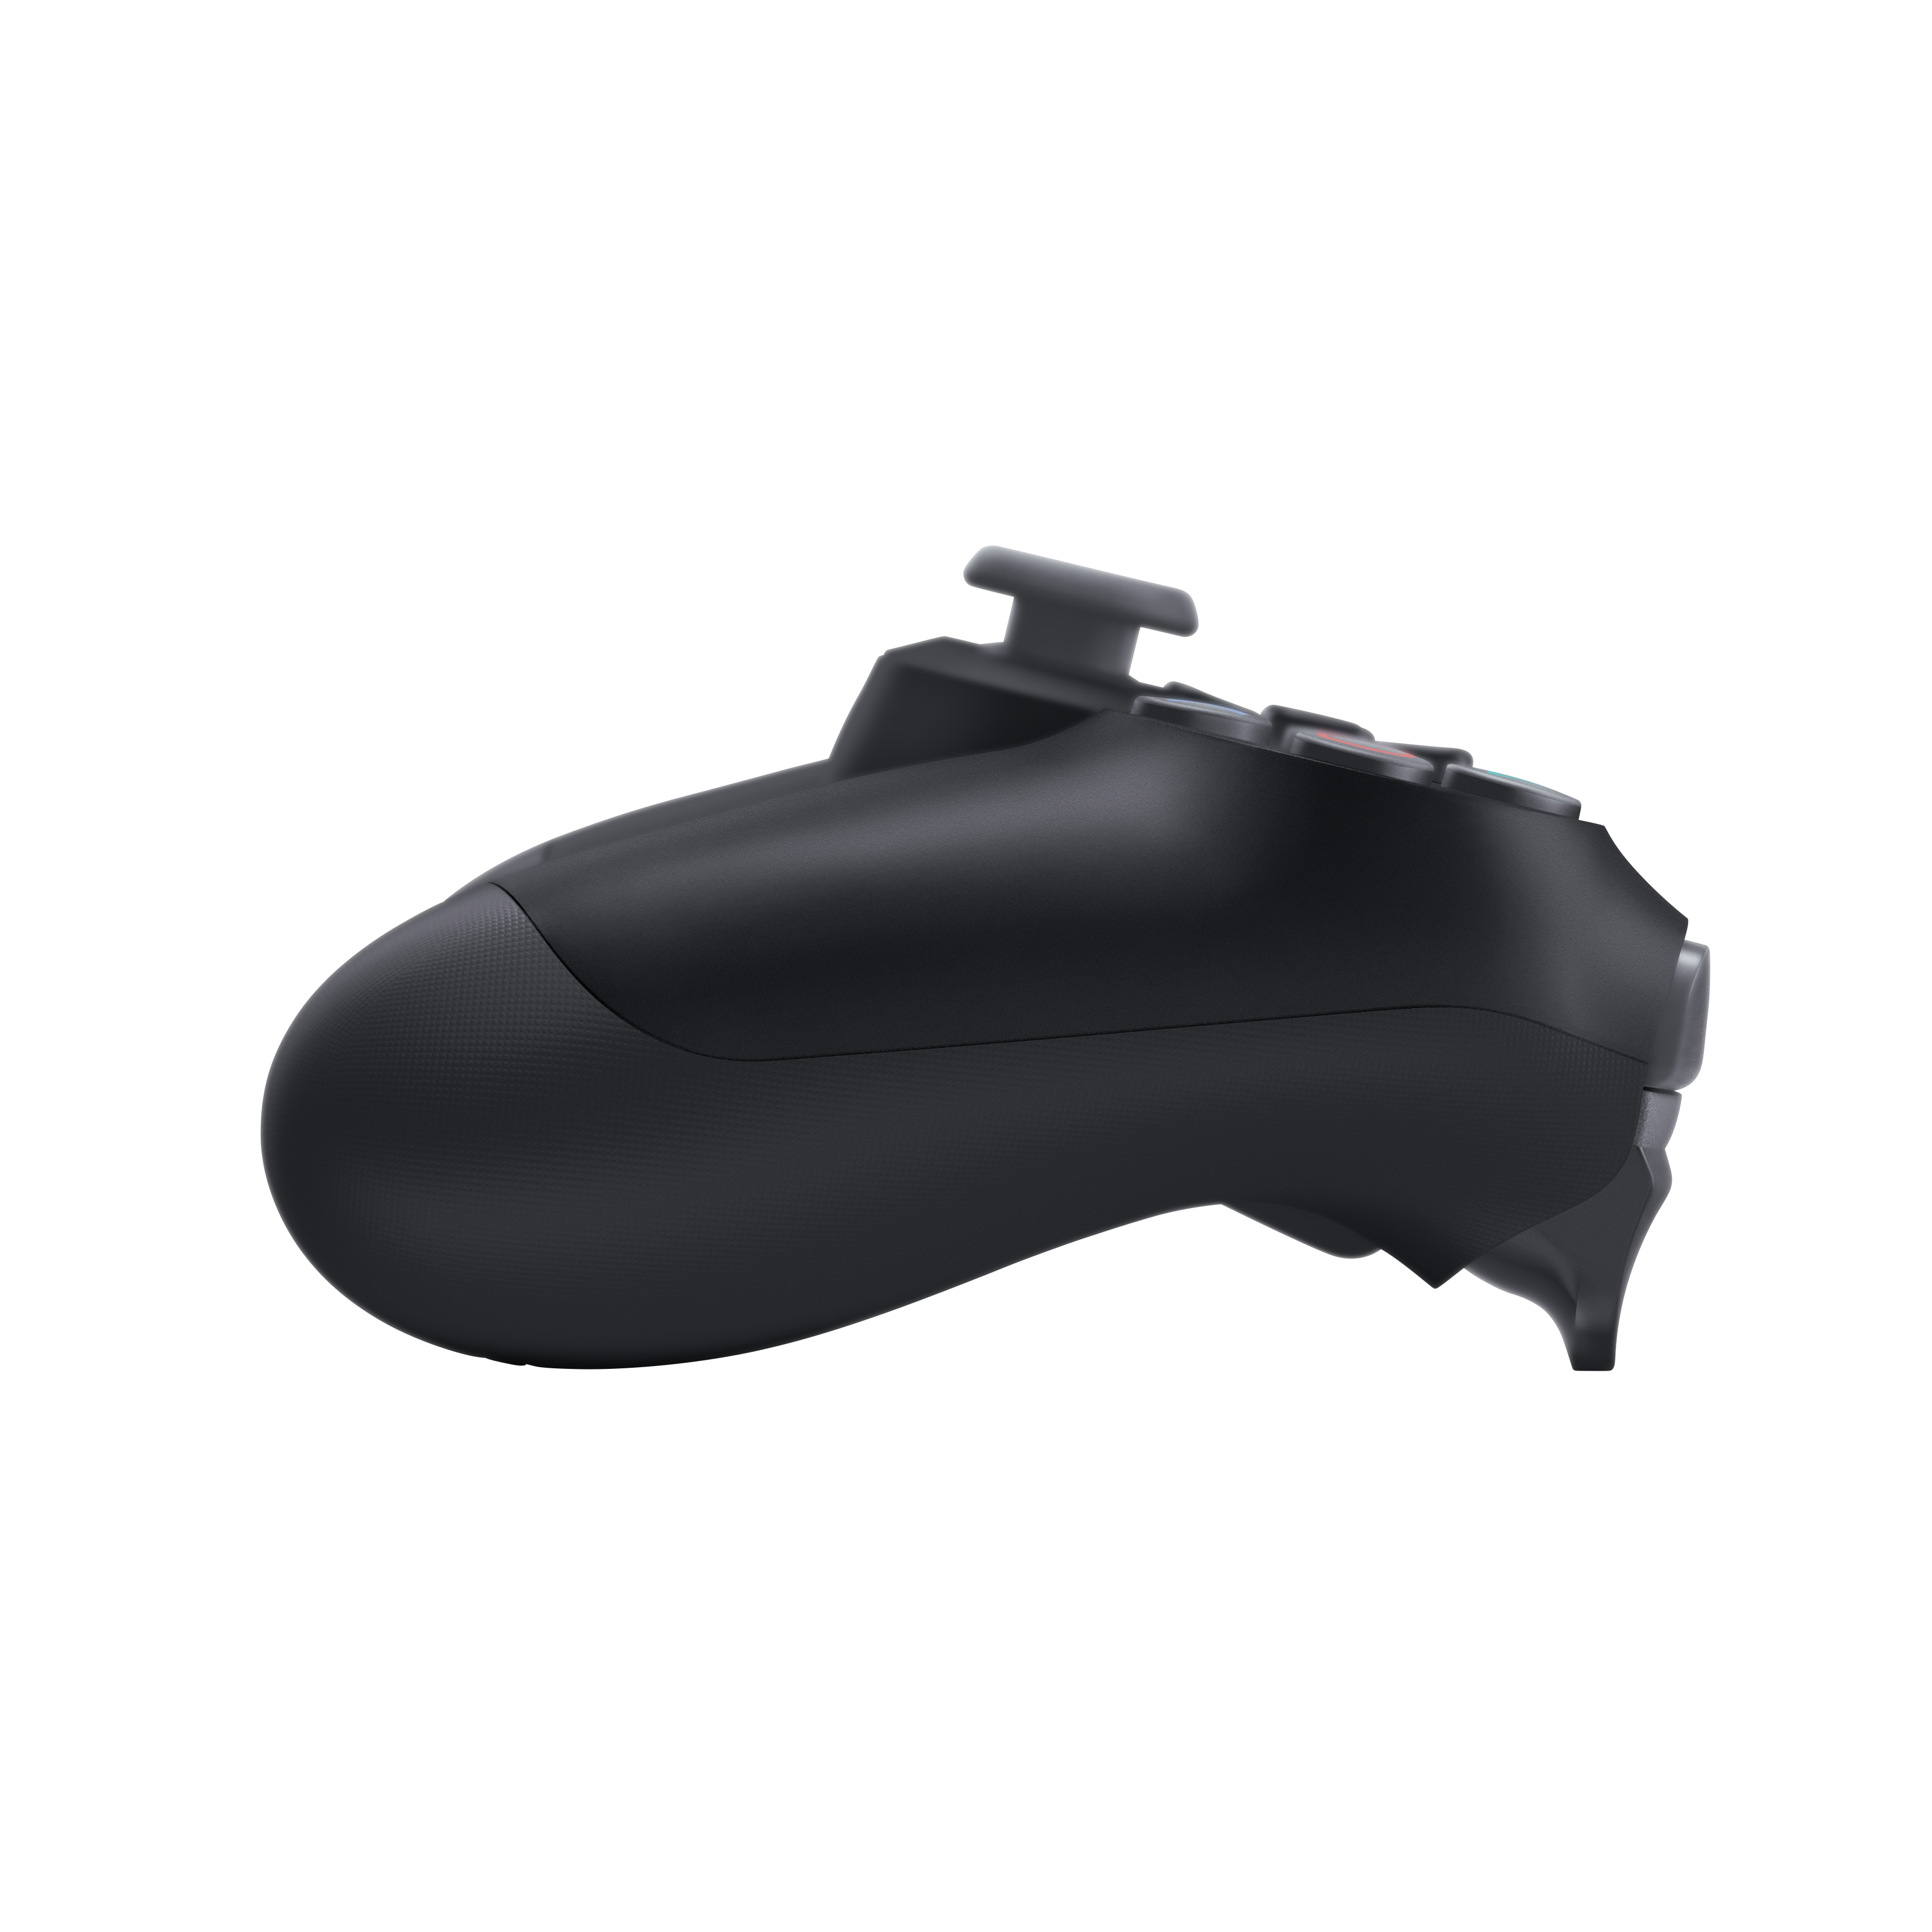 PlayStation4 DualShock Wireless Controllers (Black), , product-image